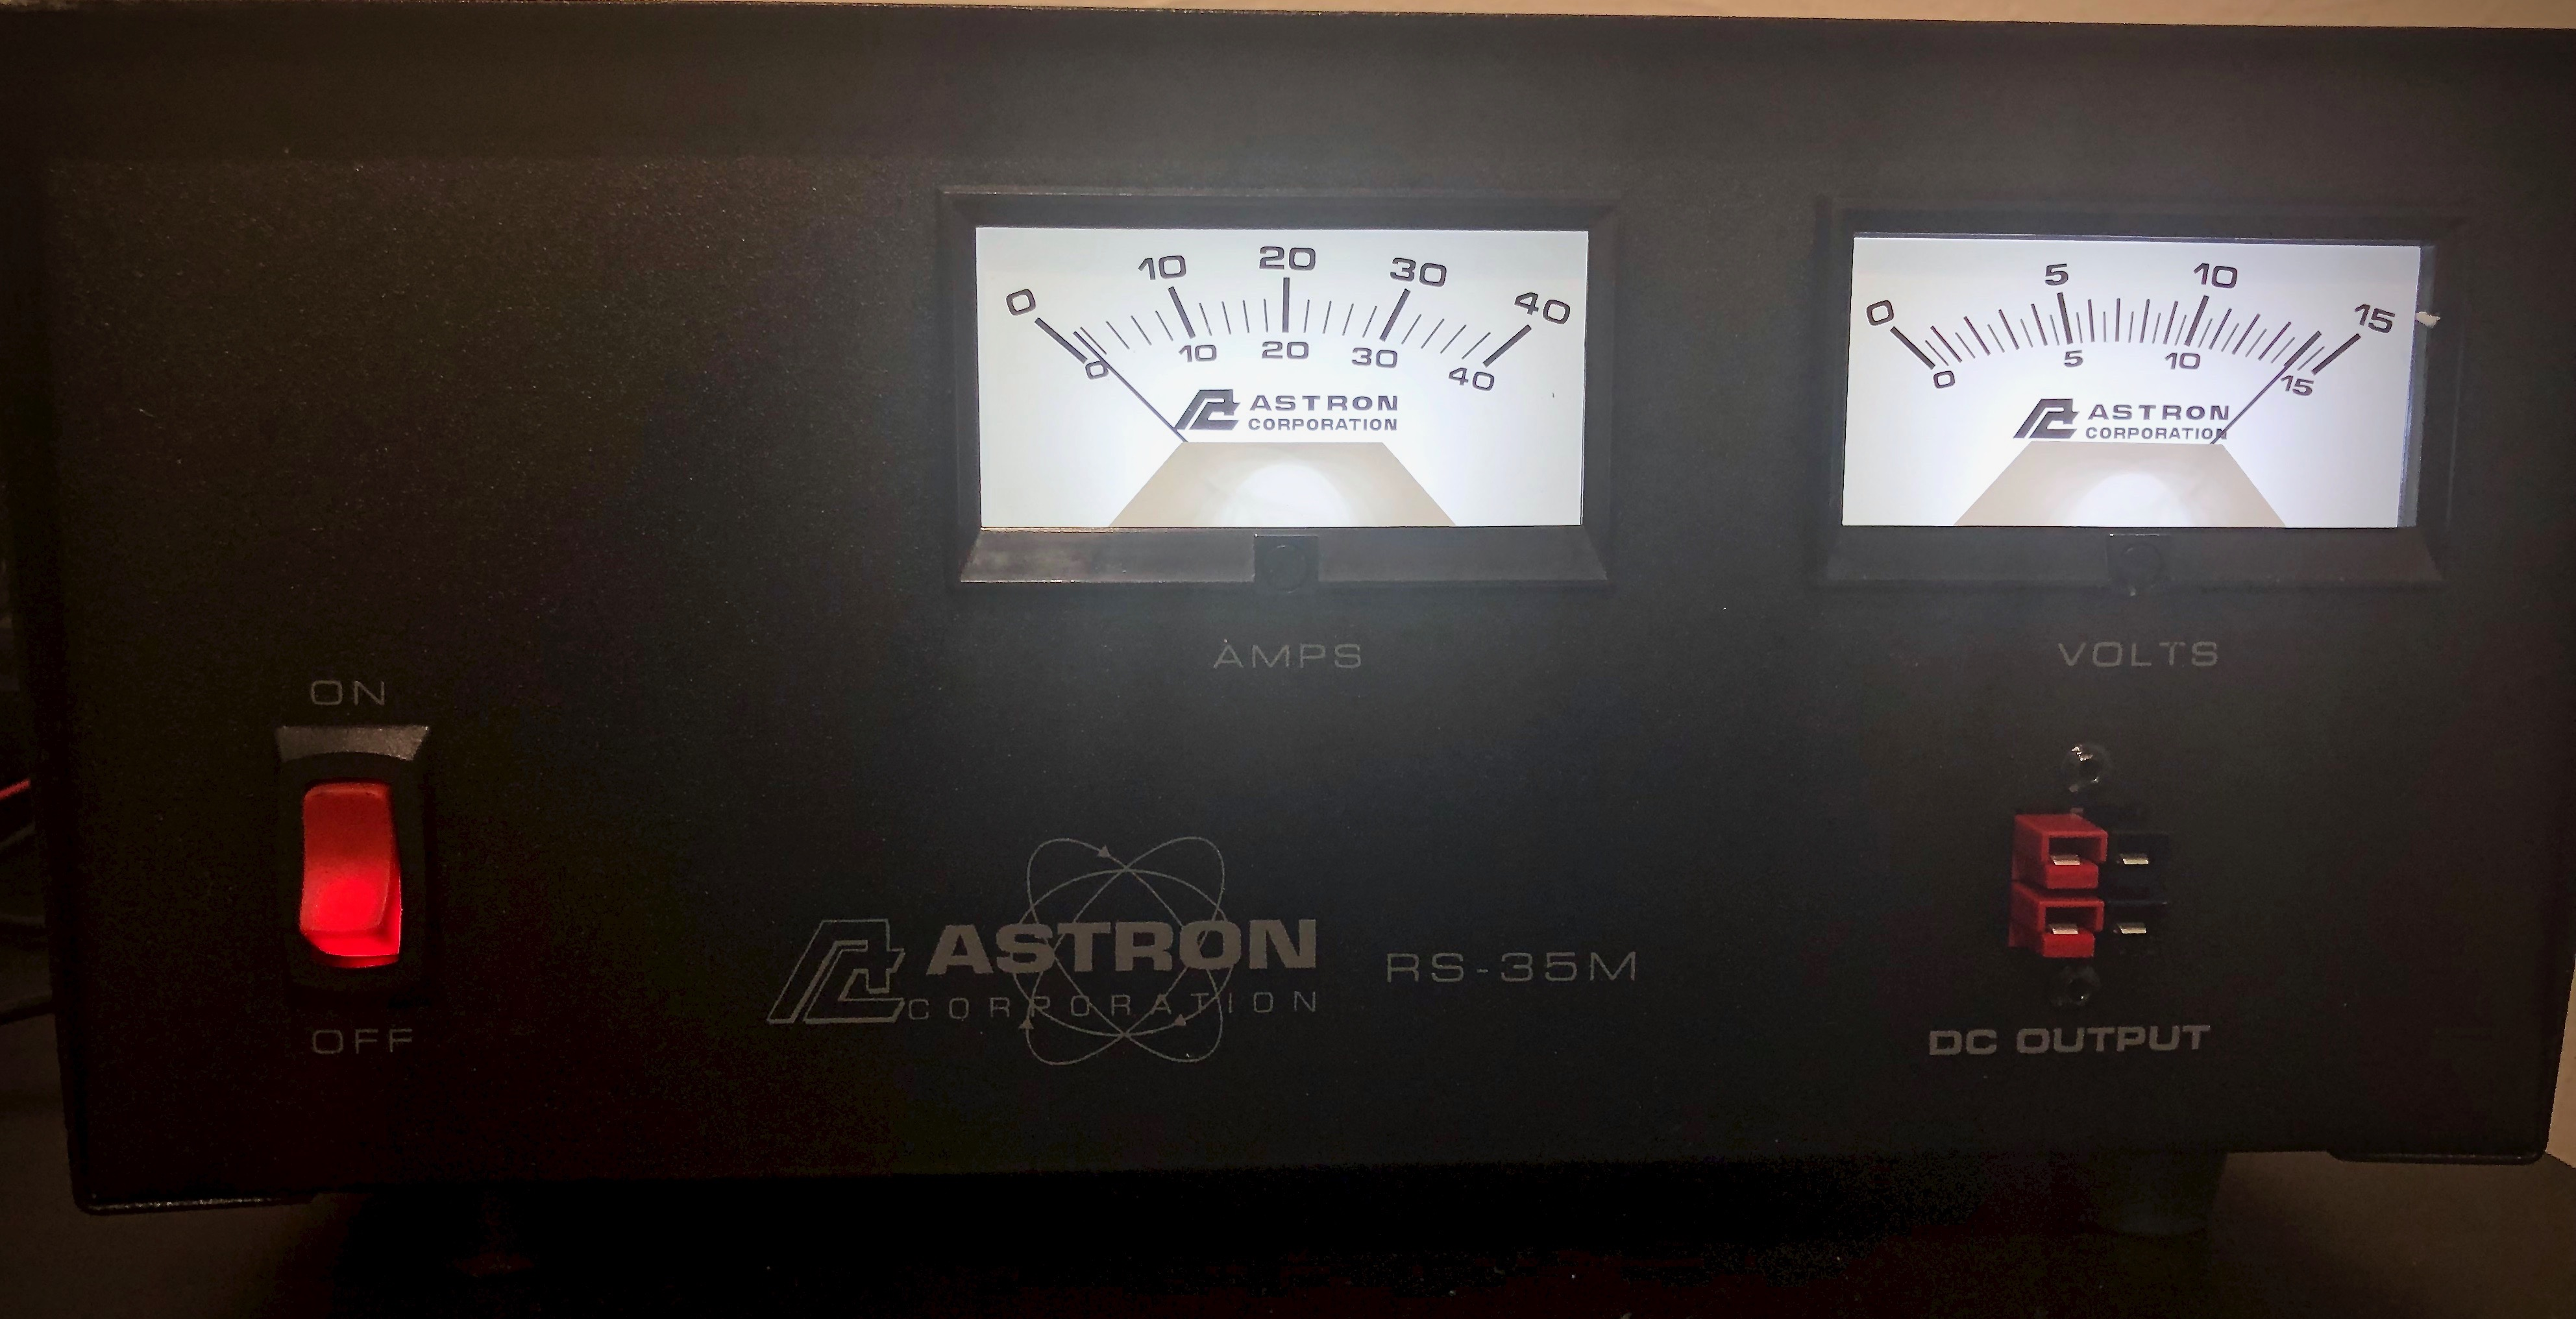 Replaced my noisy MFJ fan cooled Power supply with a Totally Silent linear power supply from Astron. Weighs about 25 pounds! Big transformer...